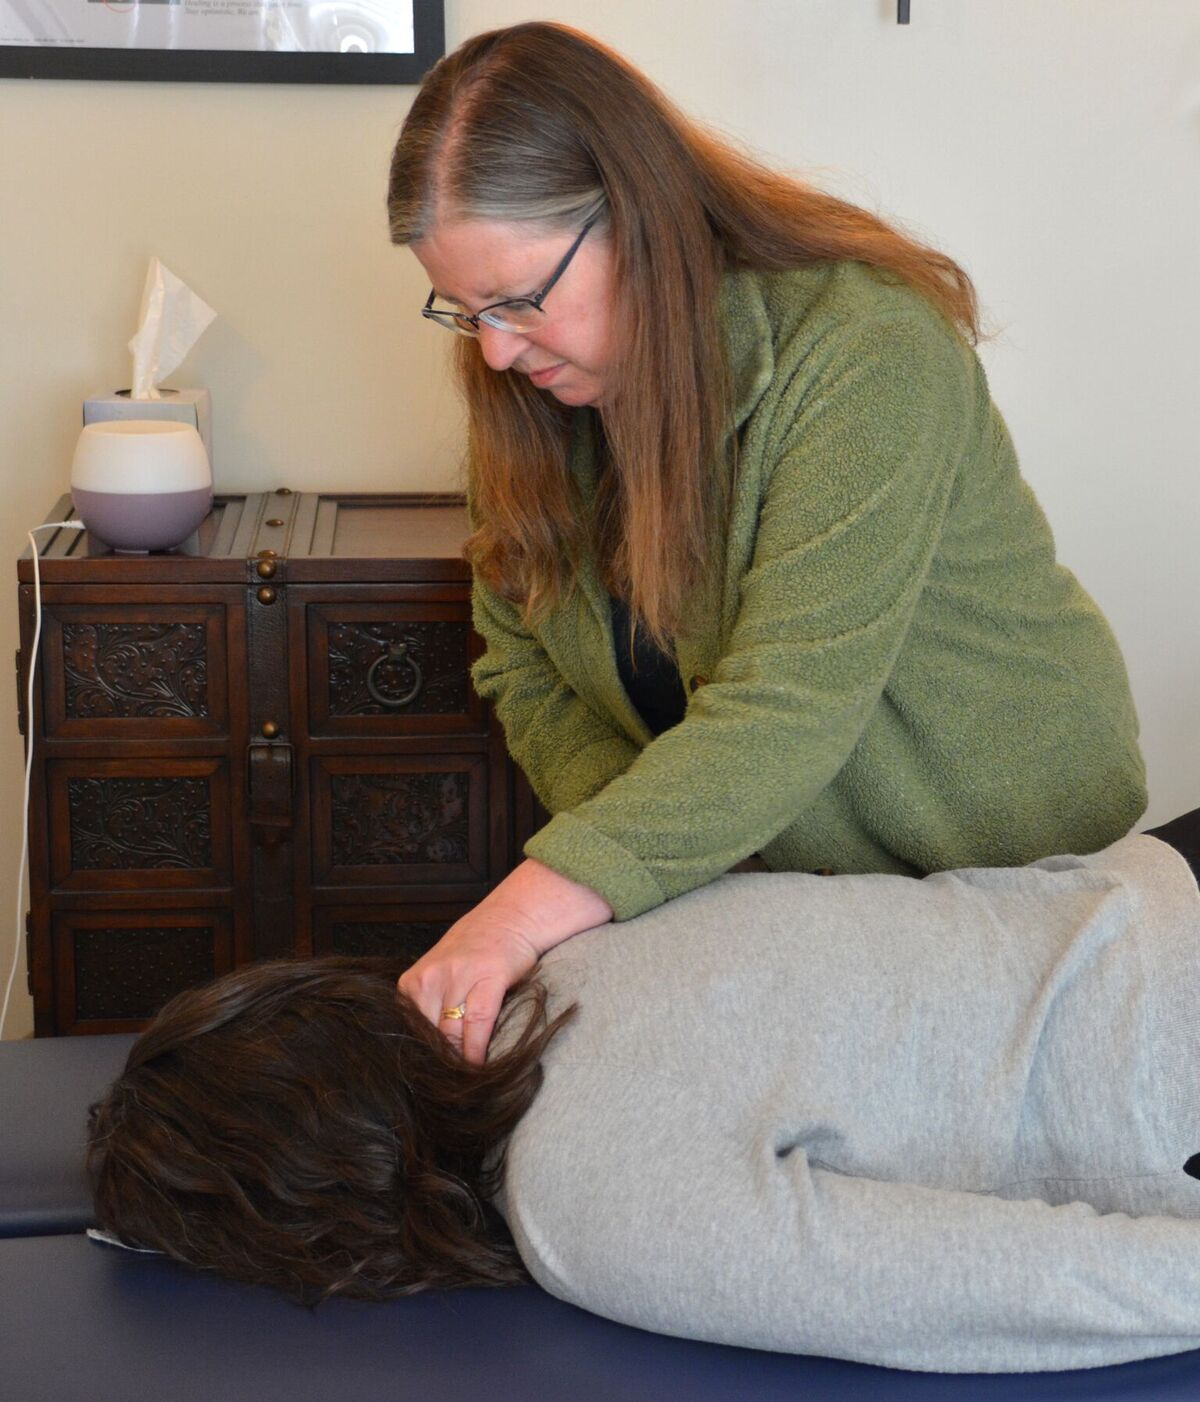 The Chiropractic Adjustment